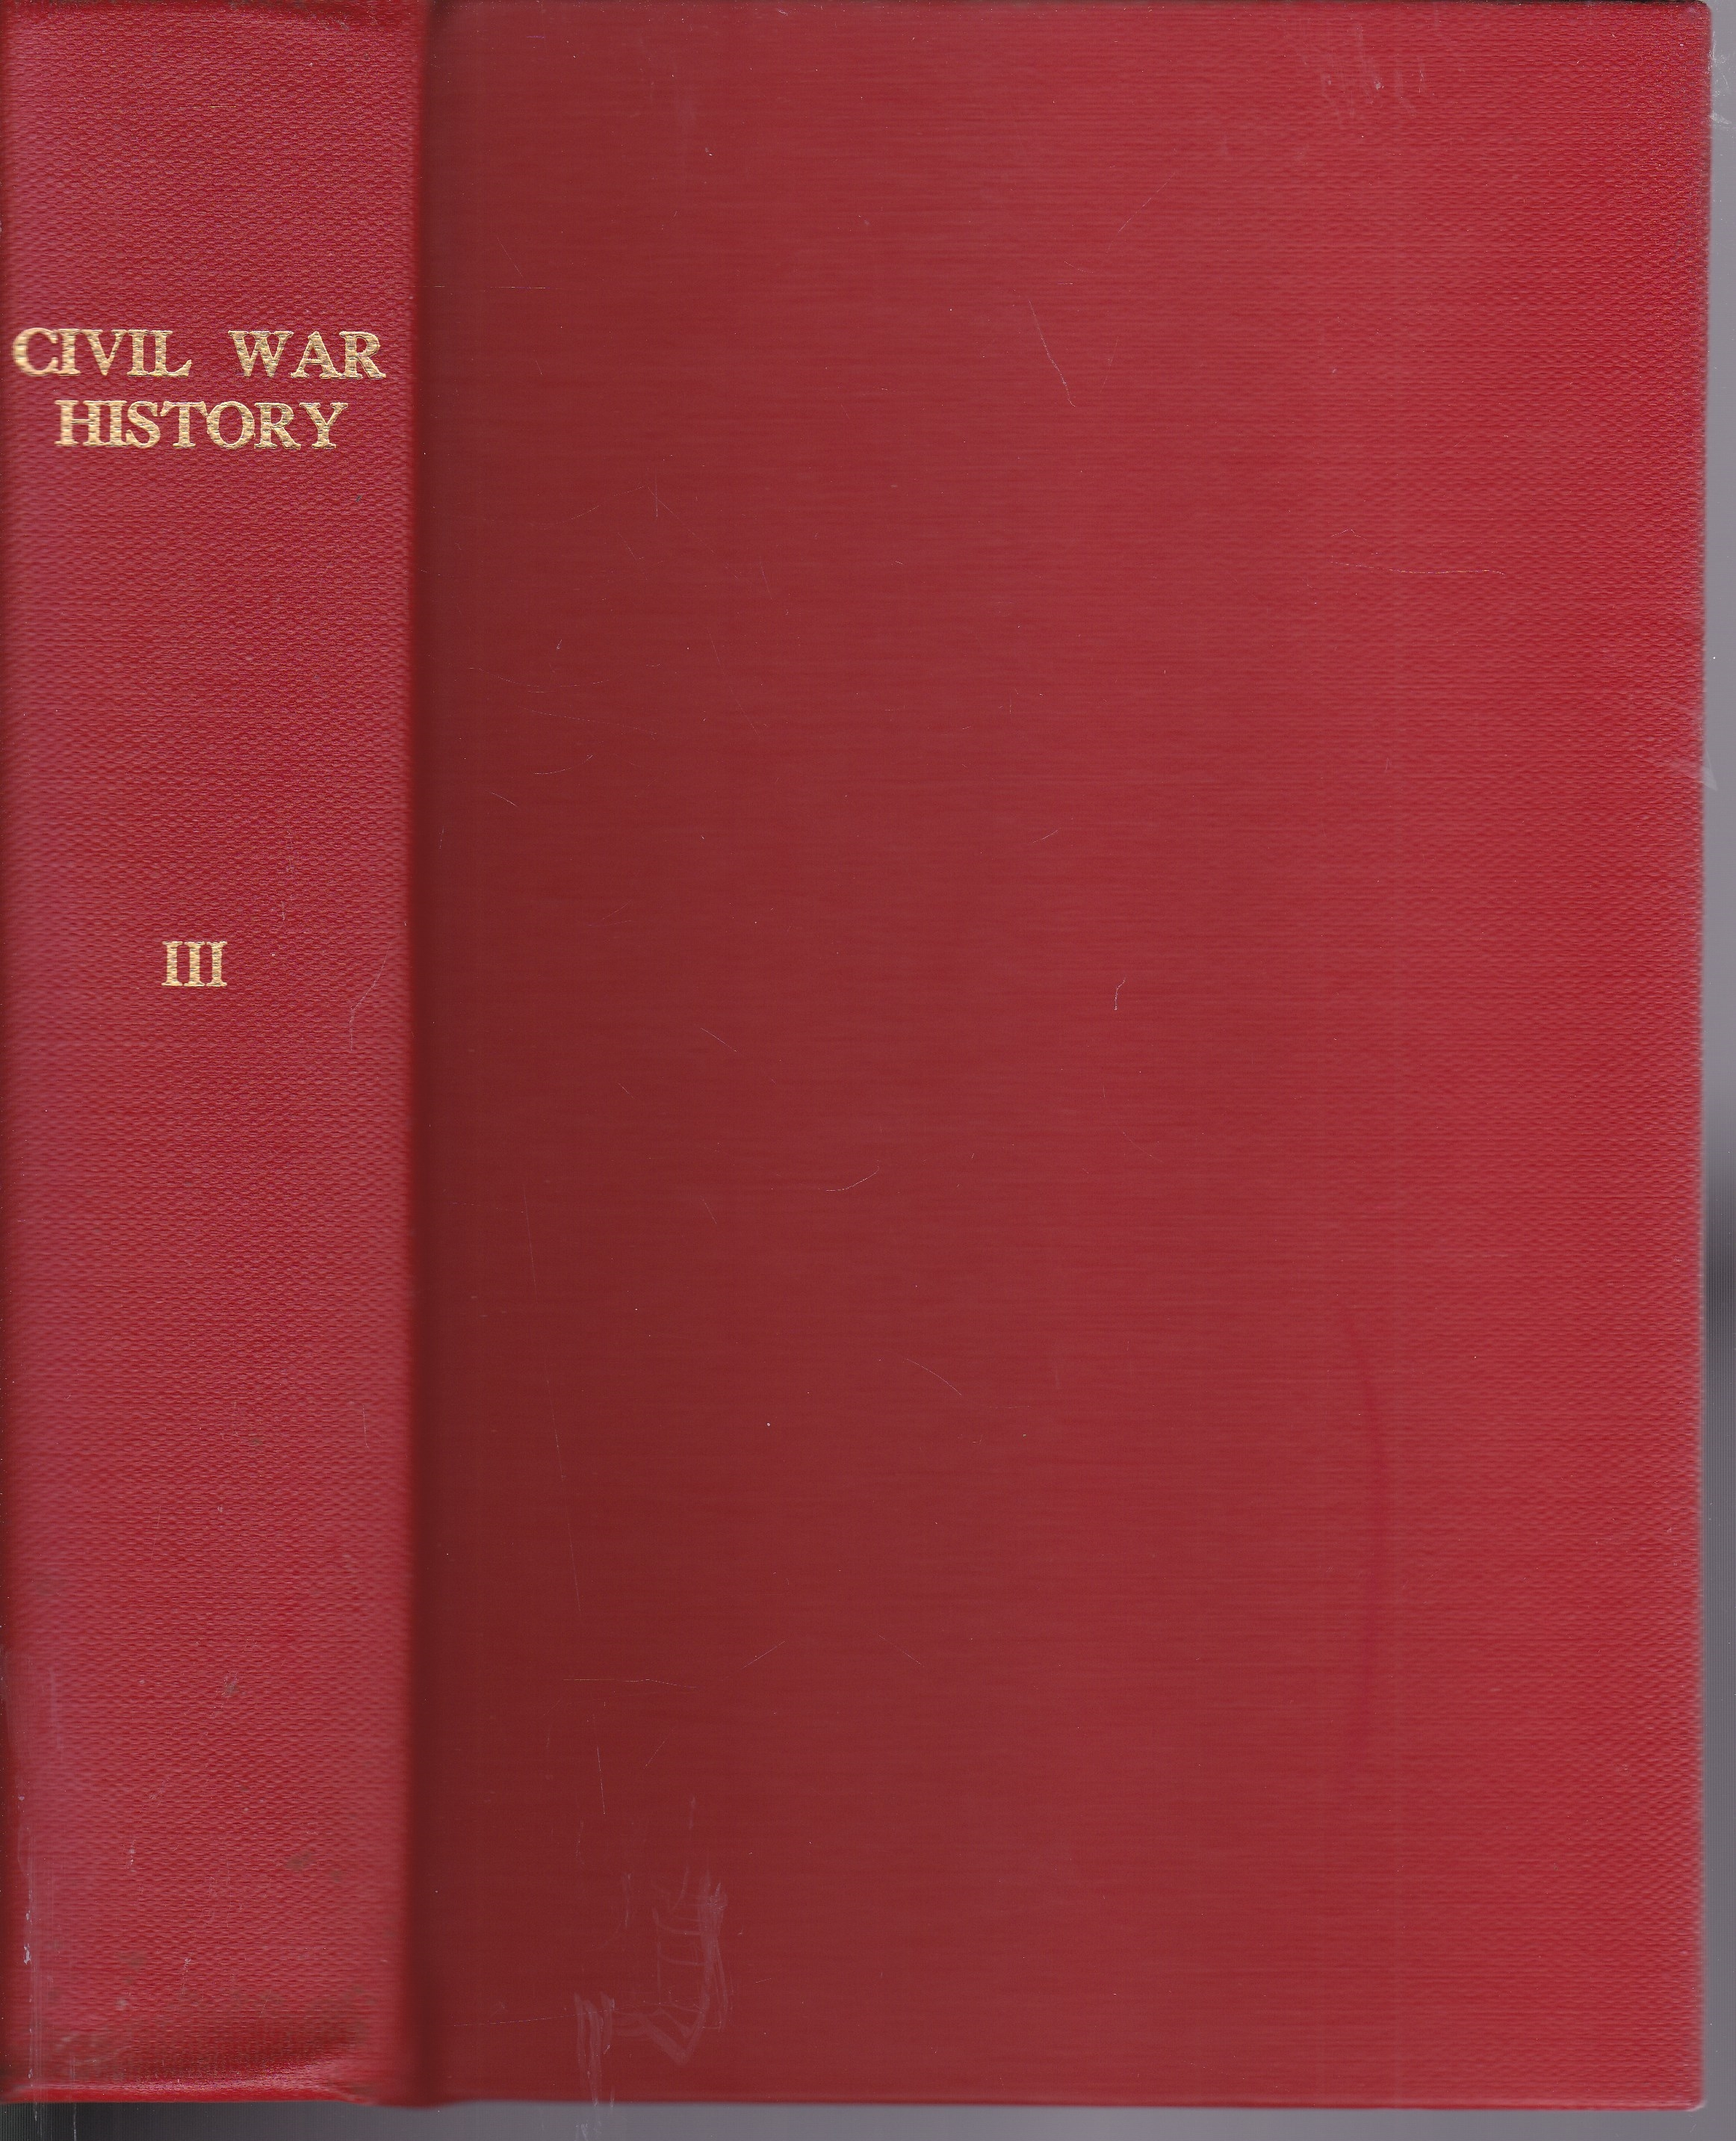 Image for Civil War History (Quarterly Journal); Volume III 1957. No 1-4 (March, June, Sept. Dec.)